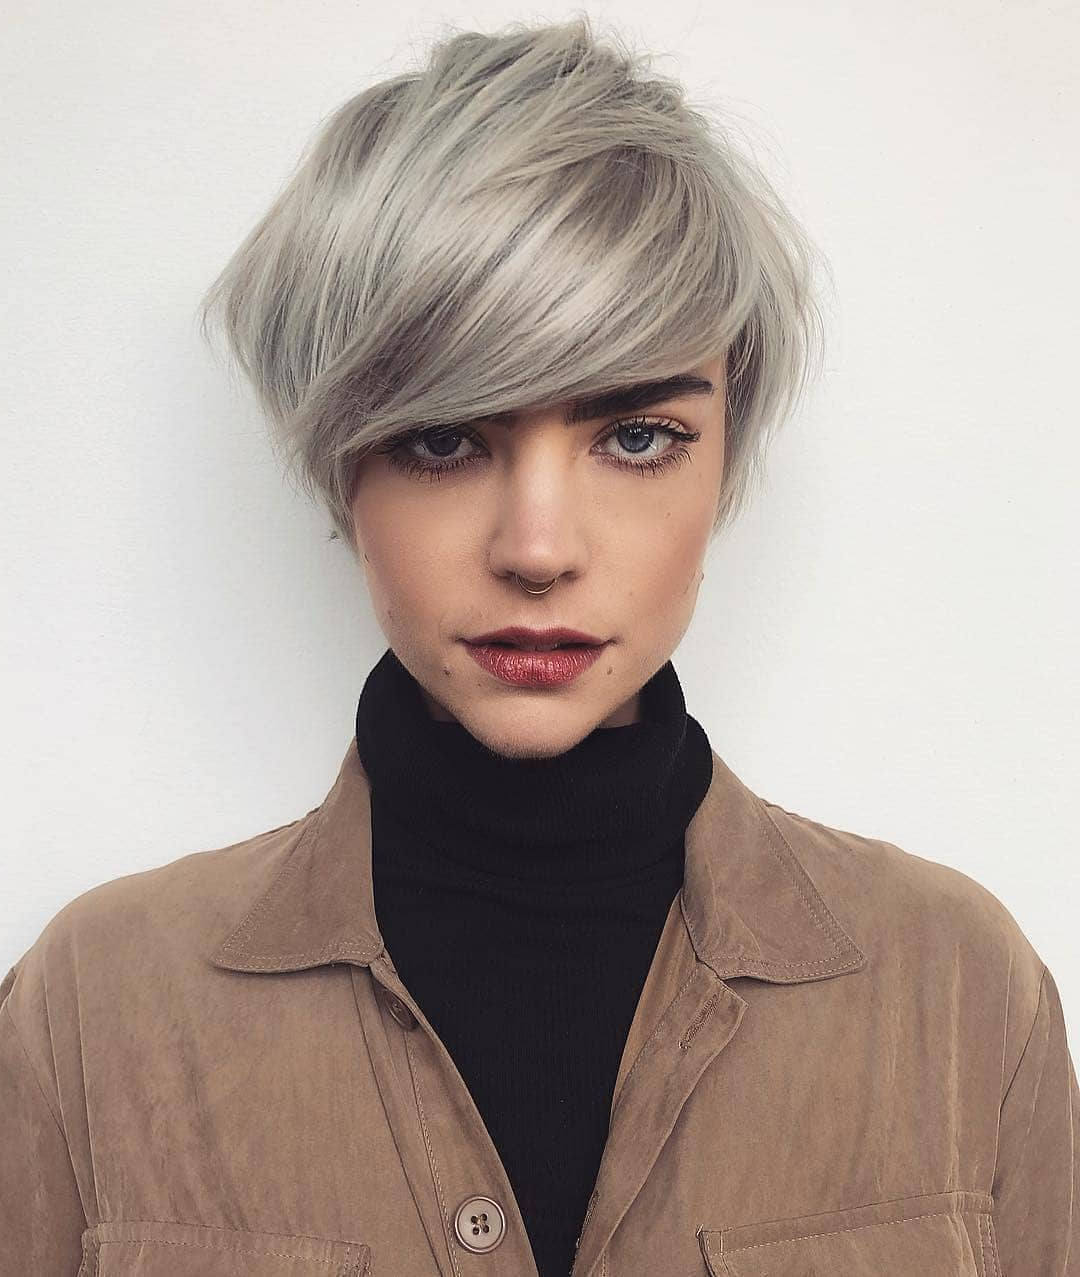 10 Trendy Short Hairstyles For Straight Hair – Pixie Haircut Inside Short Bob Hairstyles With Cropped Bangs (Gallery 10 of 20)